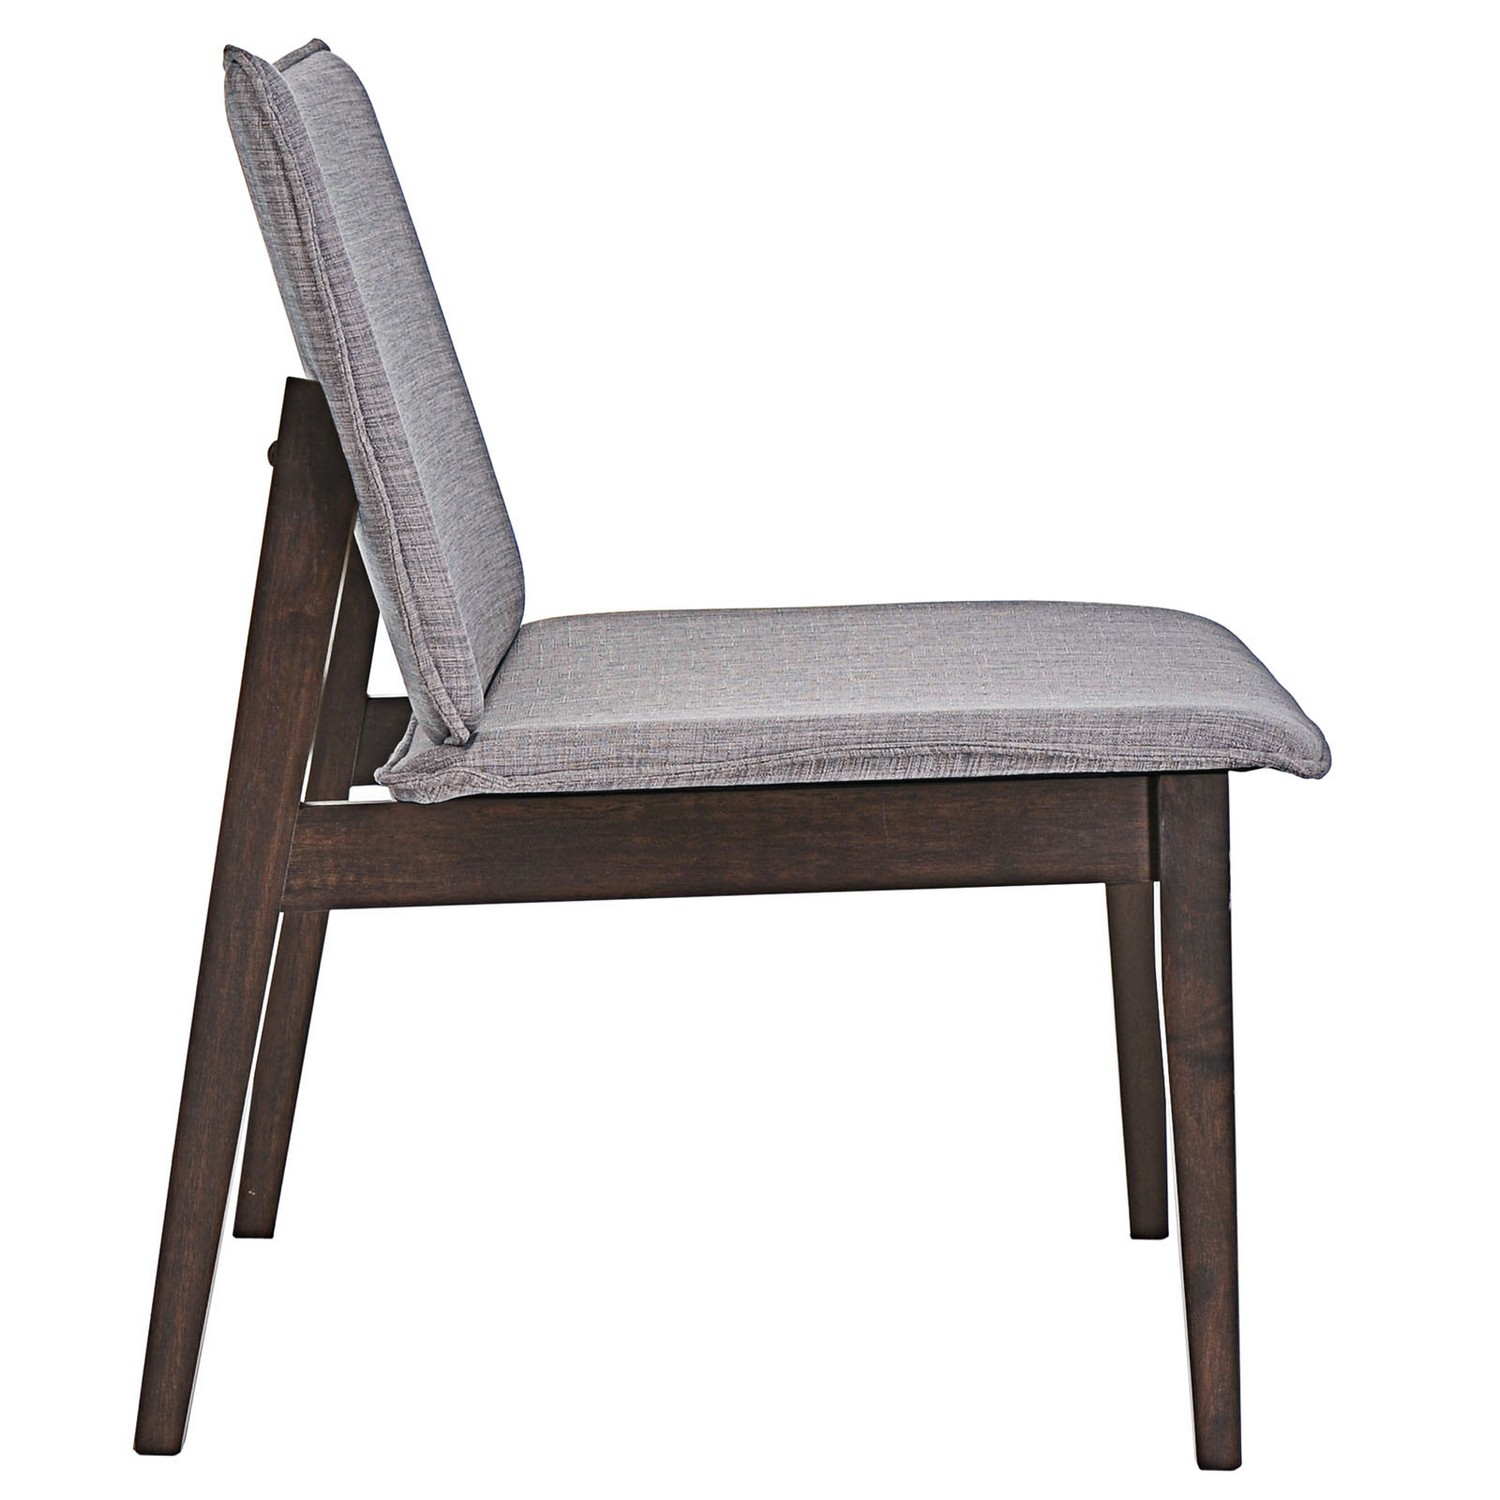 Modway Evade Lounge Chair - Walnut Gray